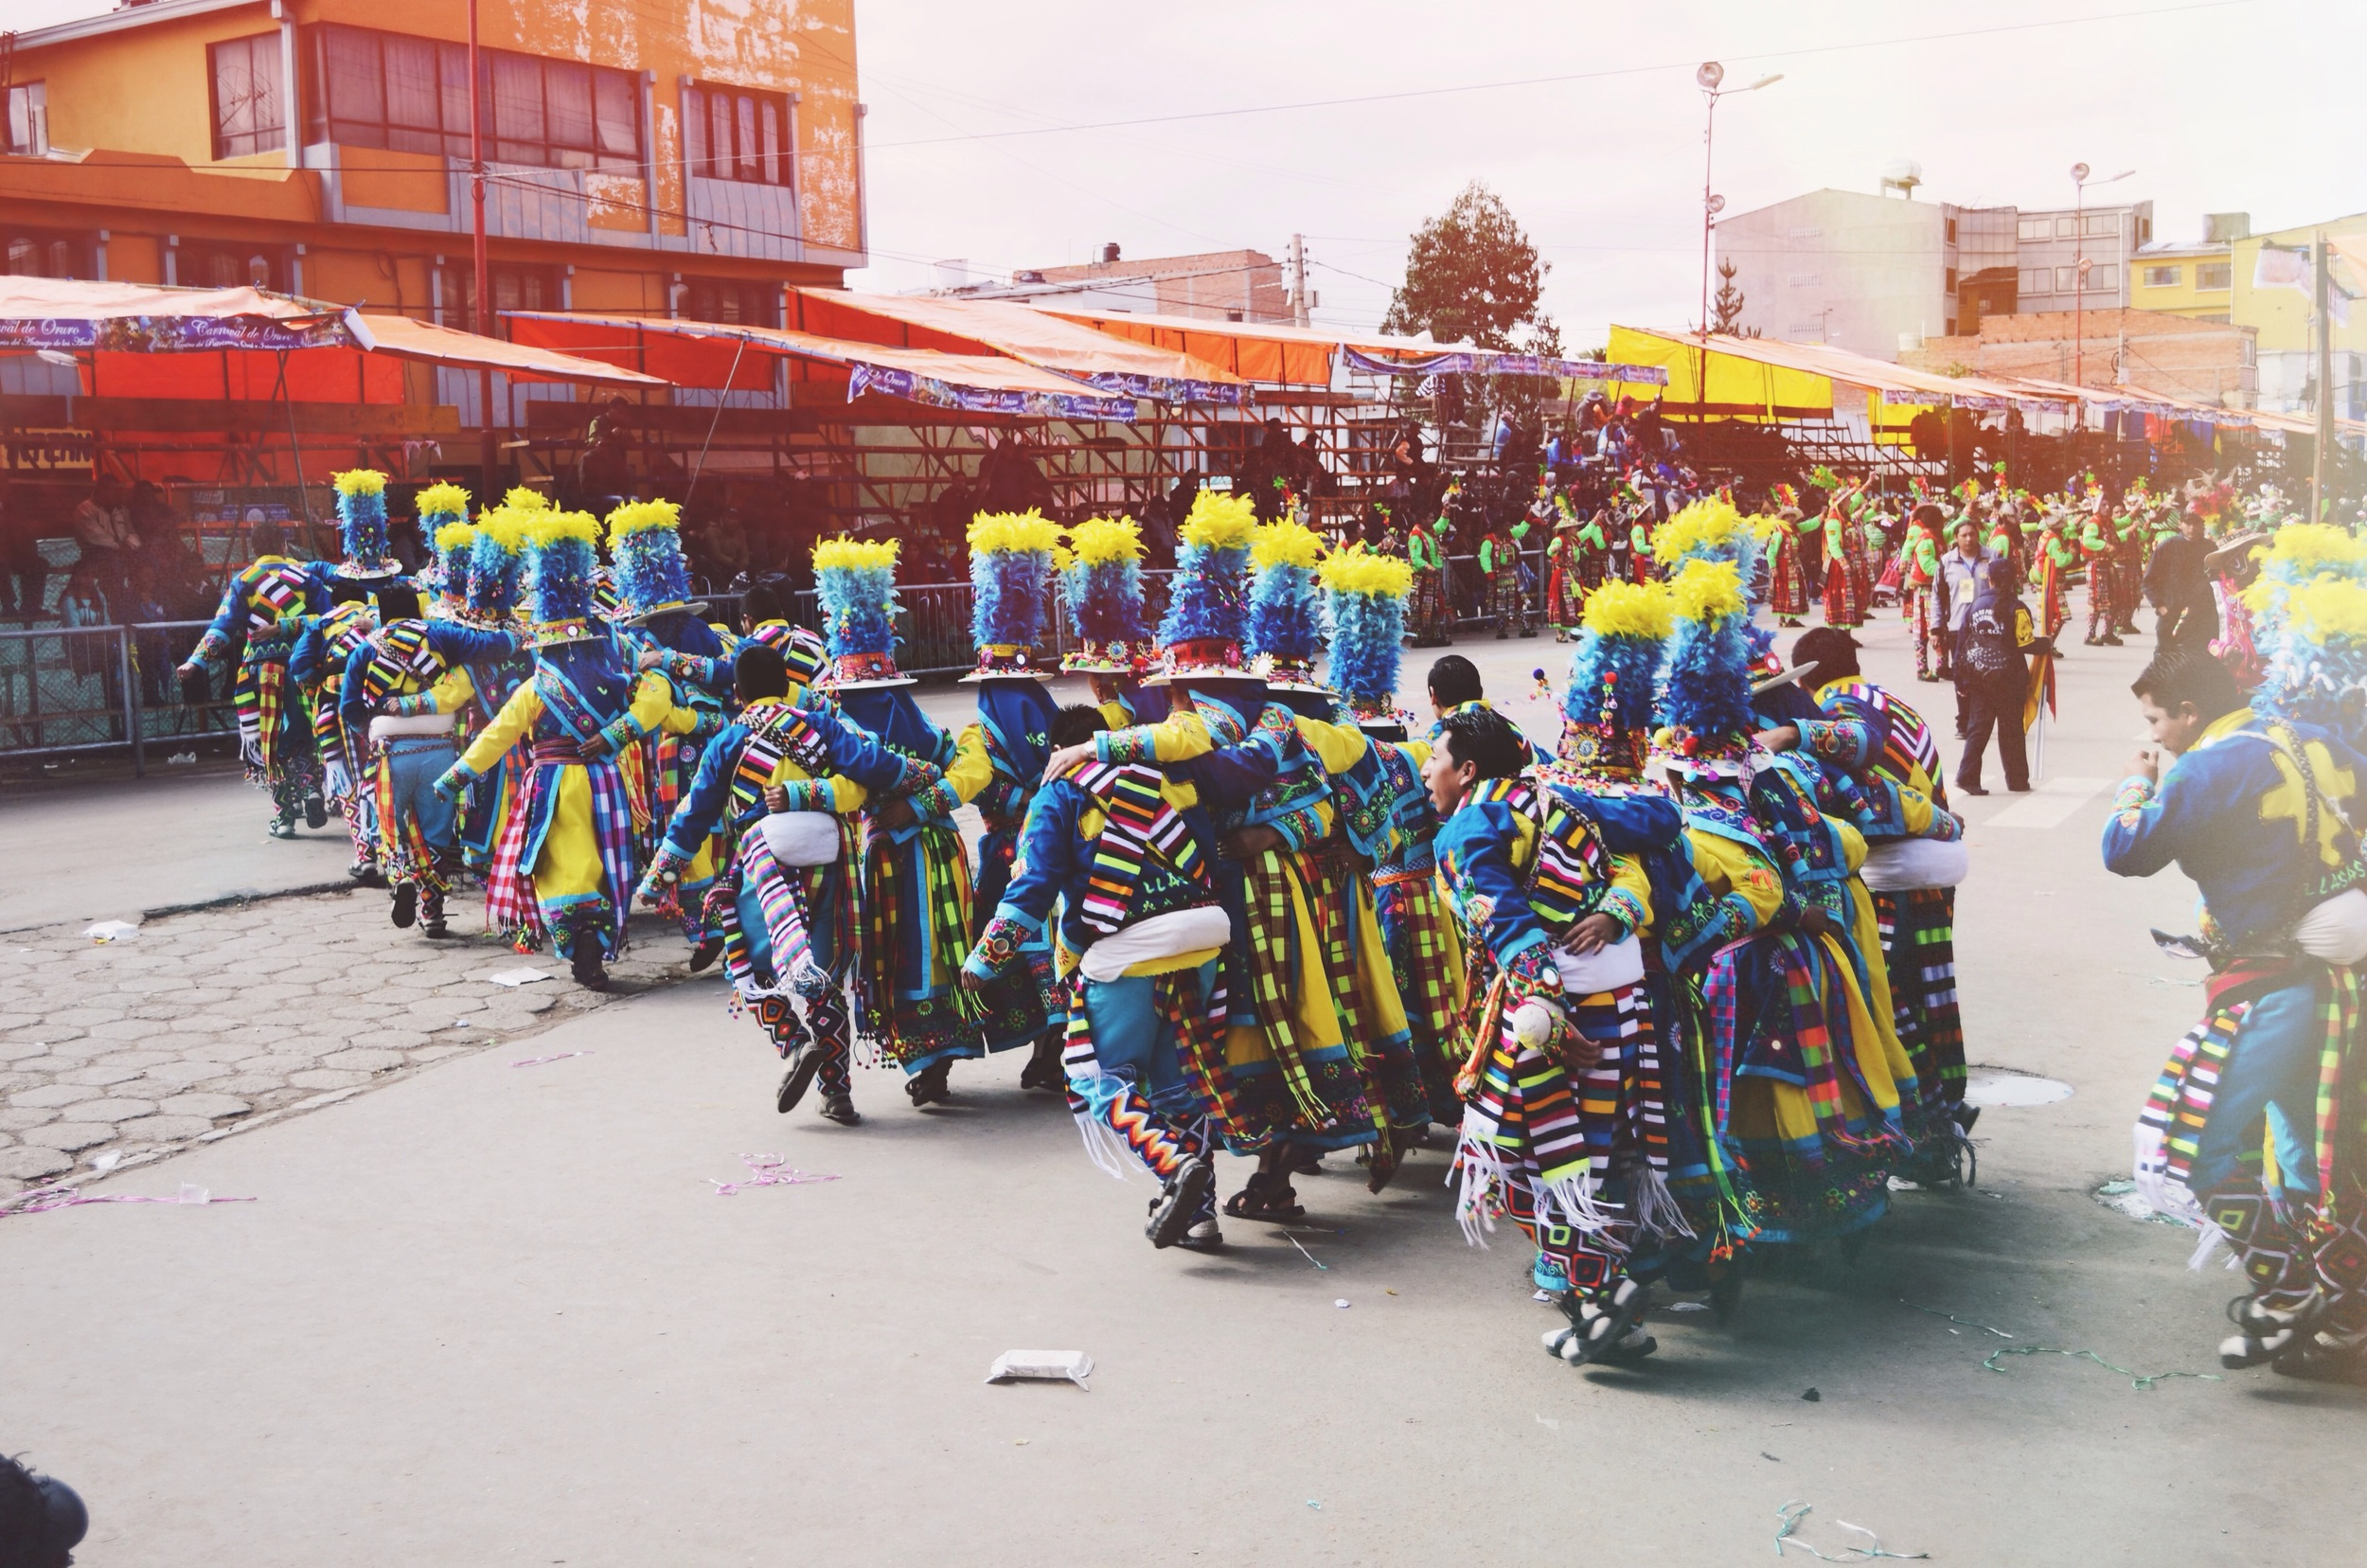 Tinku dancers on Sunday morning...the stands were pretty empty at this point because a lot people were hungover. Some of the performers were clearly hungover as well, ouch. // 15 february 2015